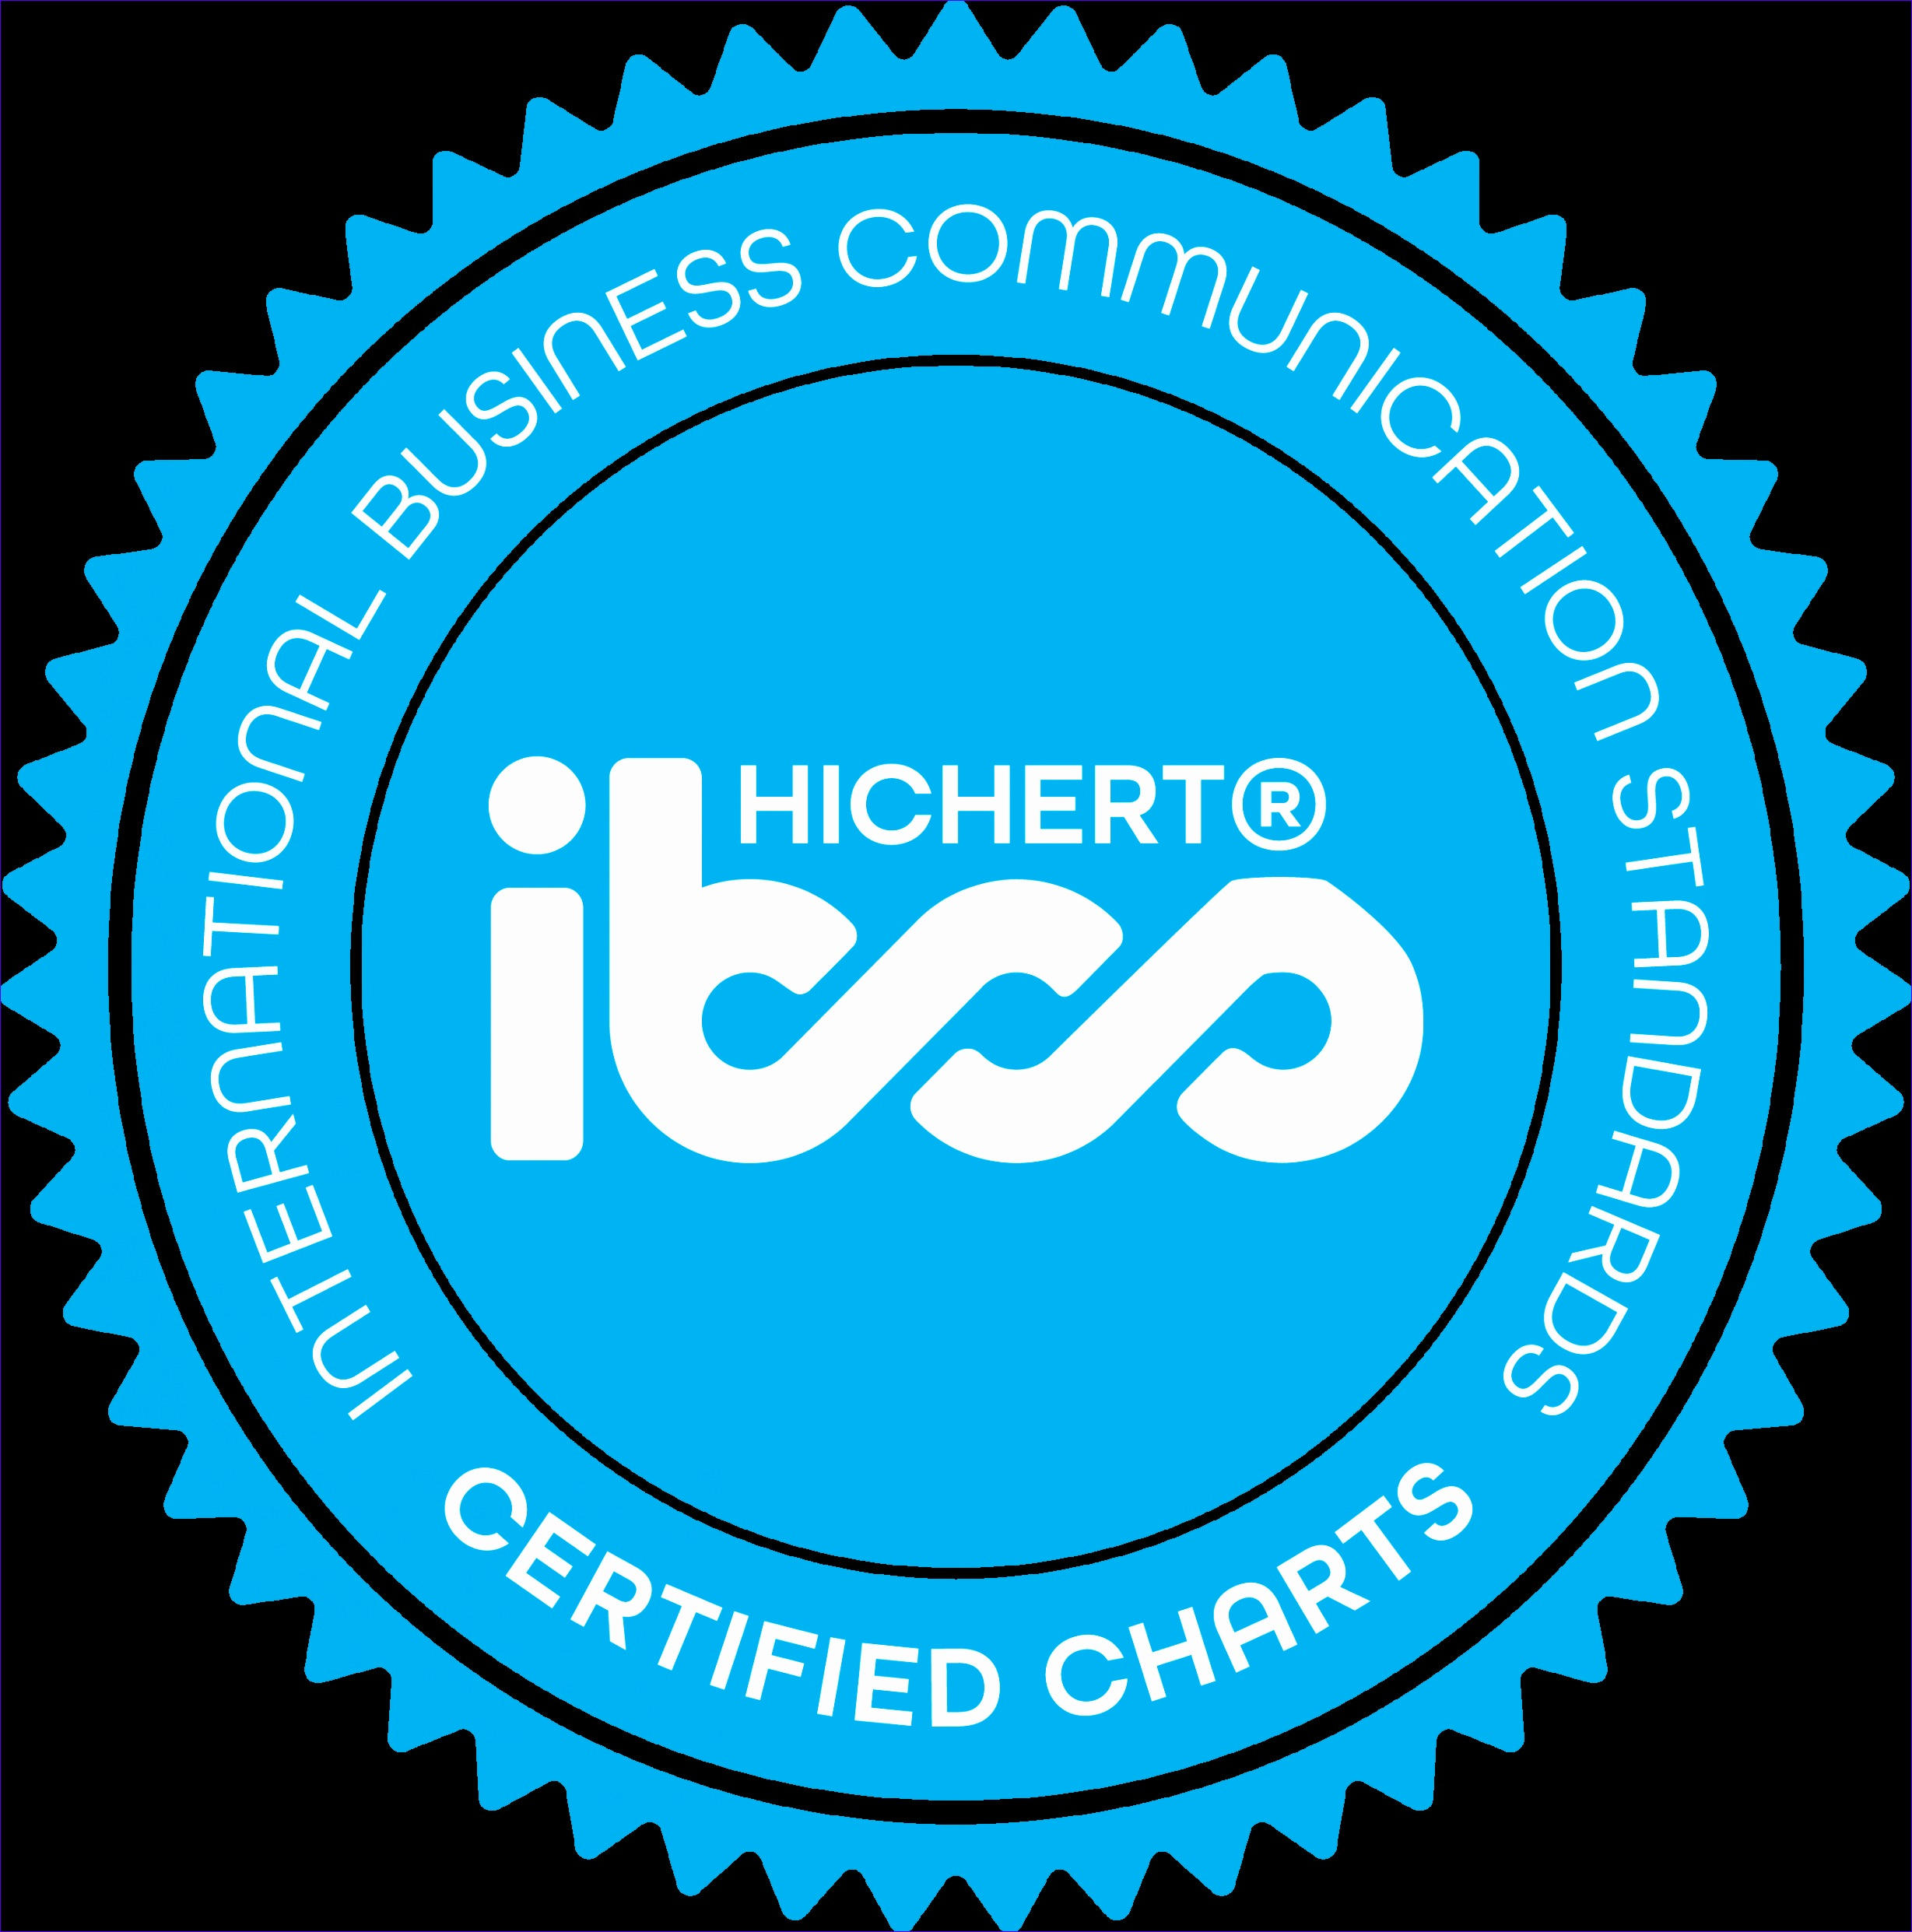 IBCS Certified Charts Screen 0x0 acf cropped